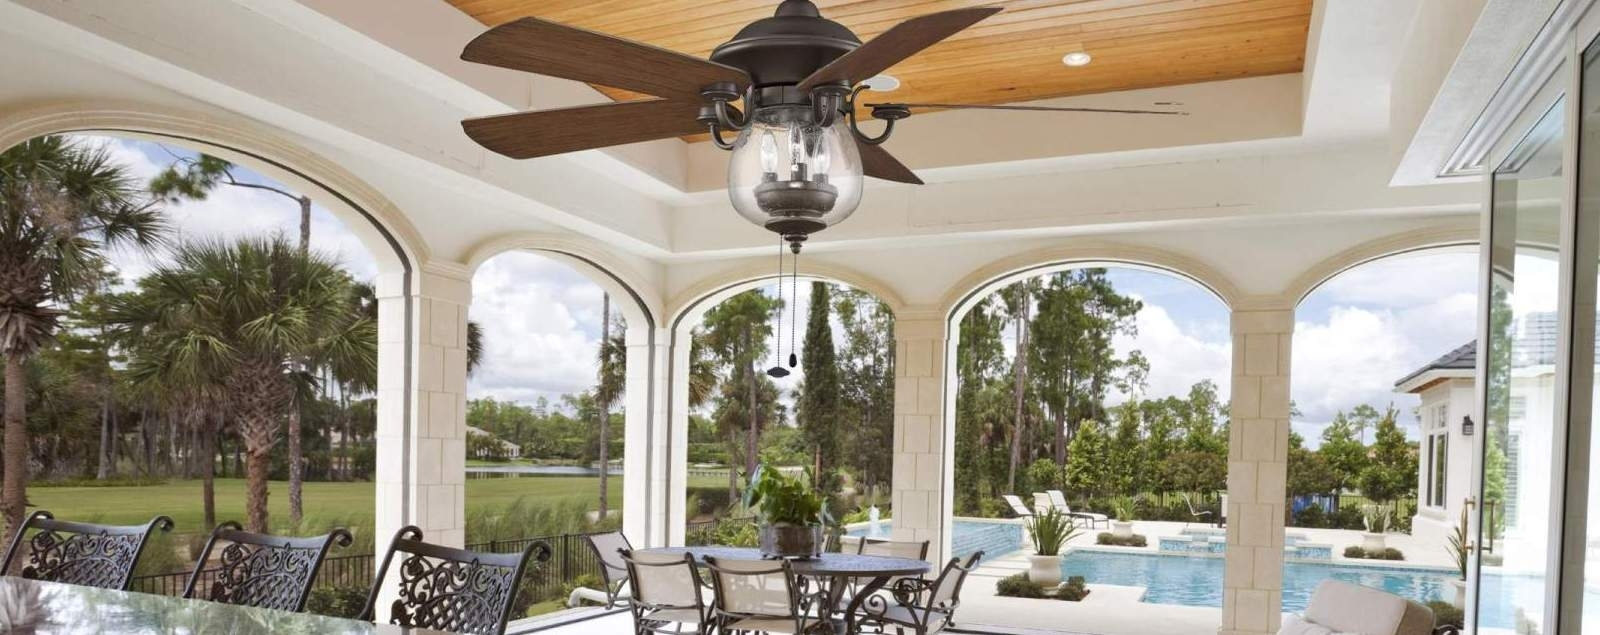 Favorite Tropical Design Outdoor Ceiling Fans In Outdoor Ceiling Fans – Shop Wet, Dry, And Damp Rated Outdoor Fans (View 5 of 20)